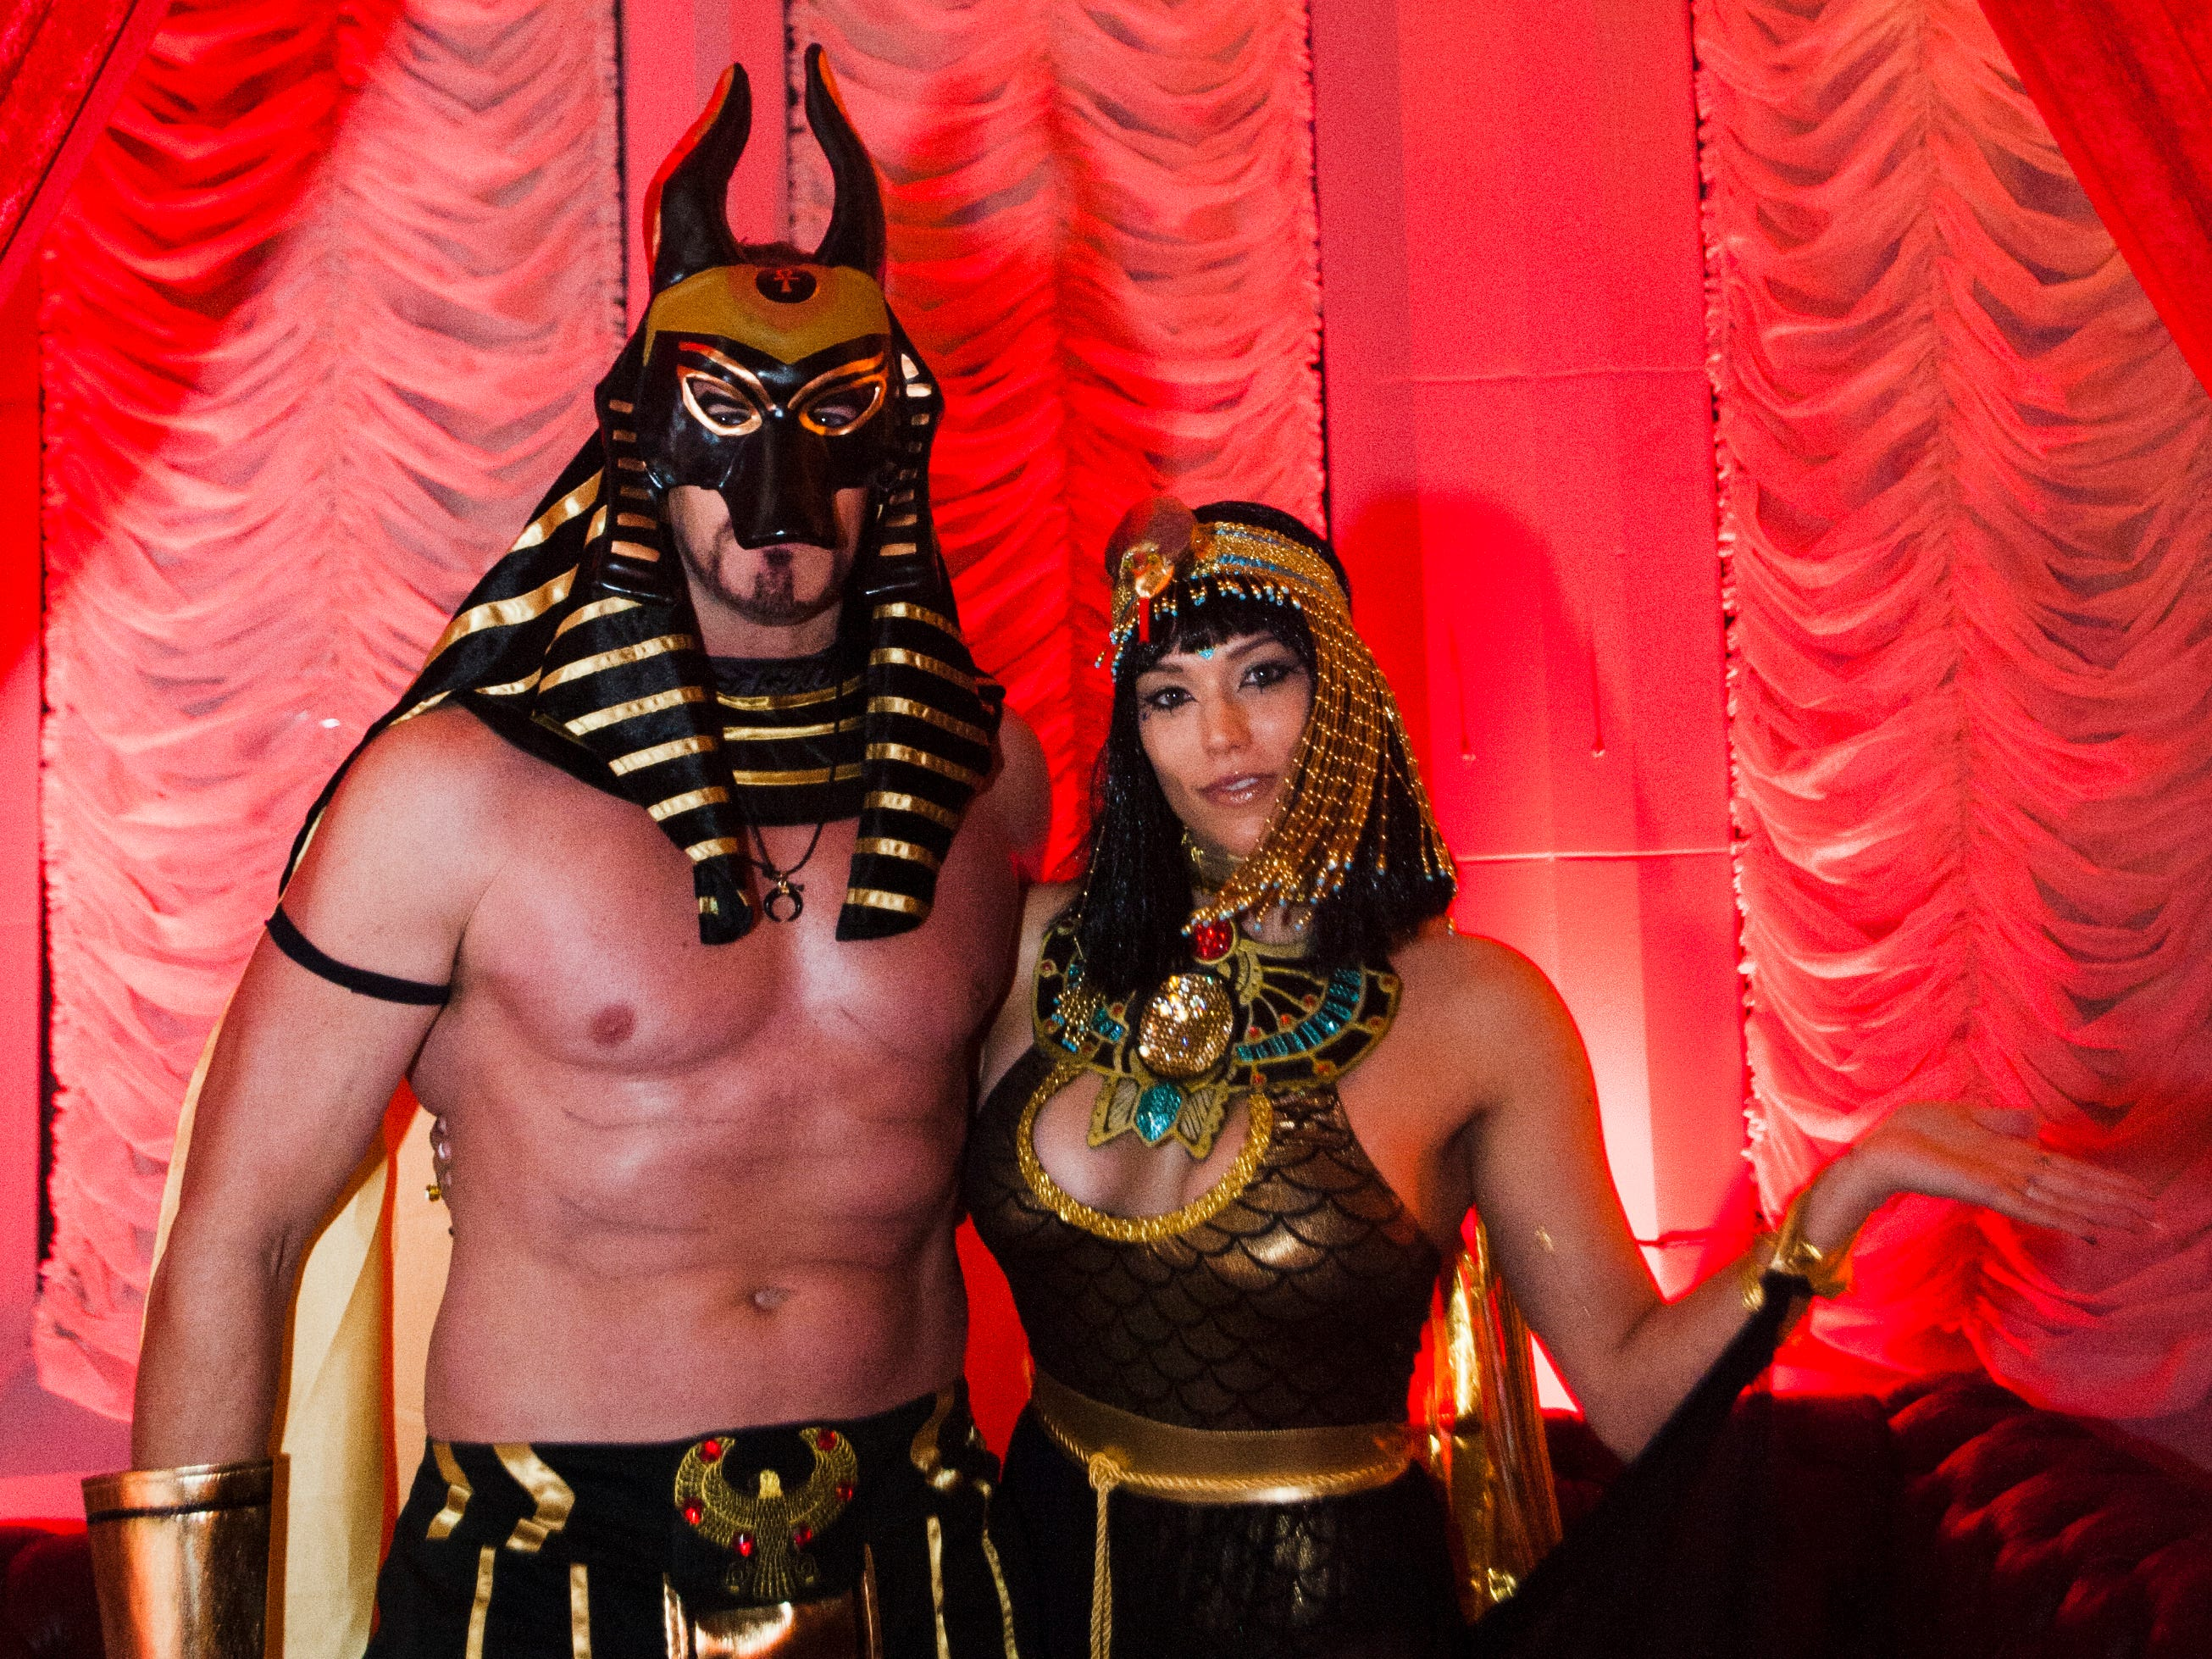 Ben Rathburn and Jen Gross of Dearborn Heights attend Theatre Bizarre as Egyptian gods.